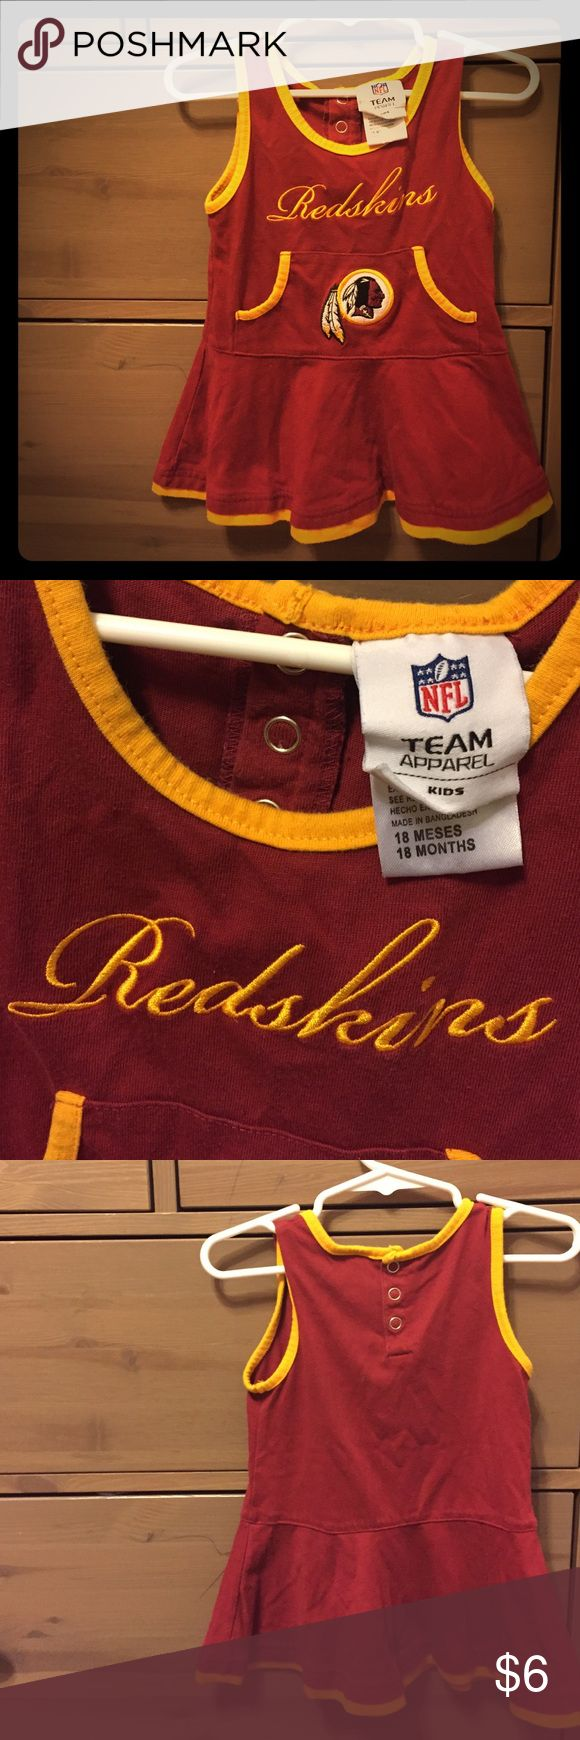 Baby Girl Redskins Cheerleader Dress NFL Team Apparel. Used condition.  18m. 60% cotton 40% polyester. Machine wash cold separately gentle cycle. Loose thread in embroidery - see pic. NFL Dresses Casual